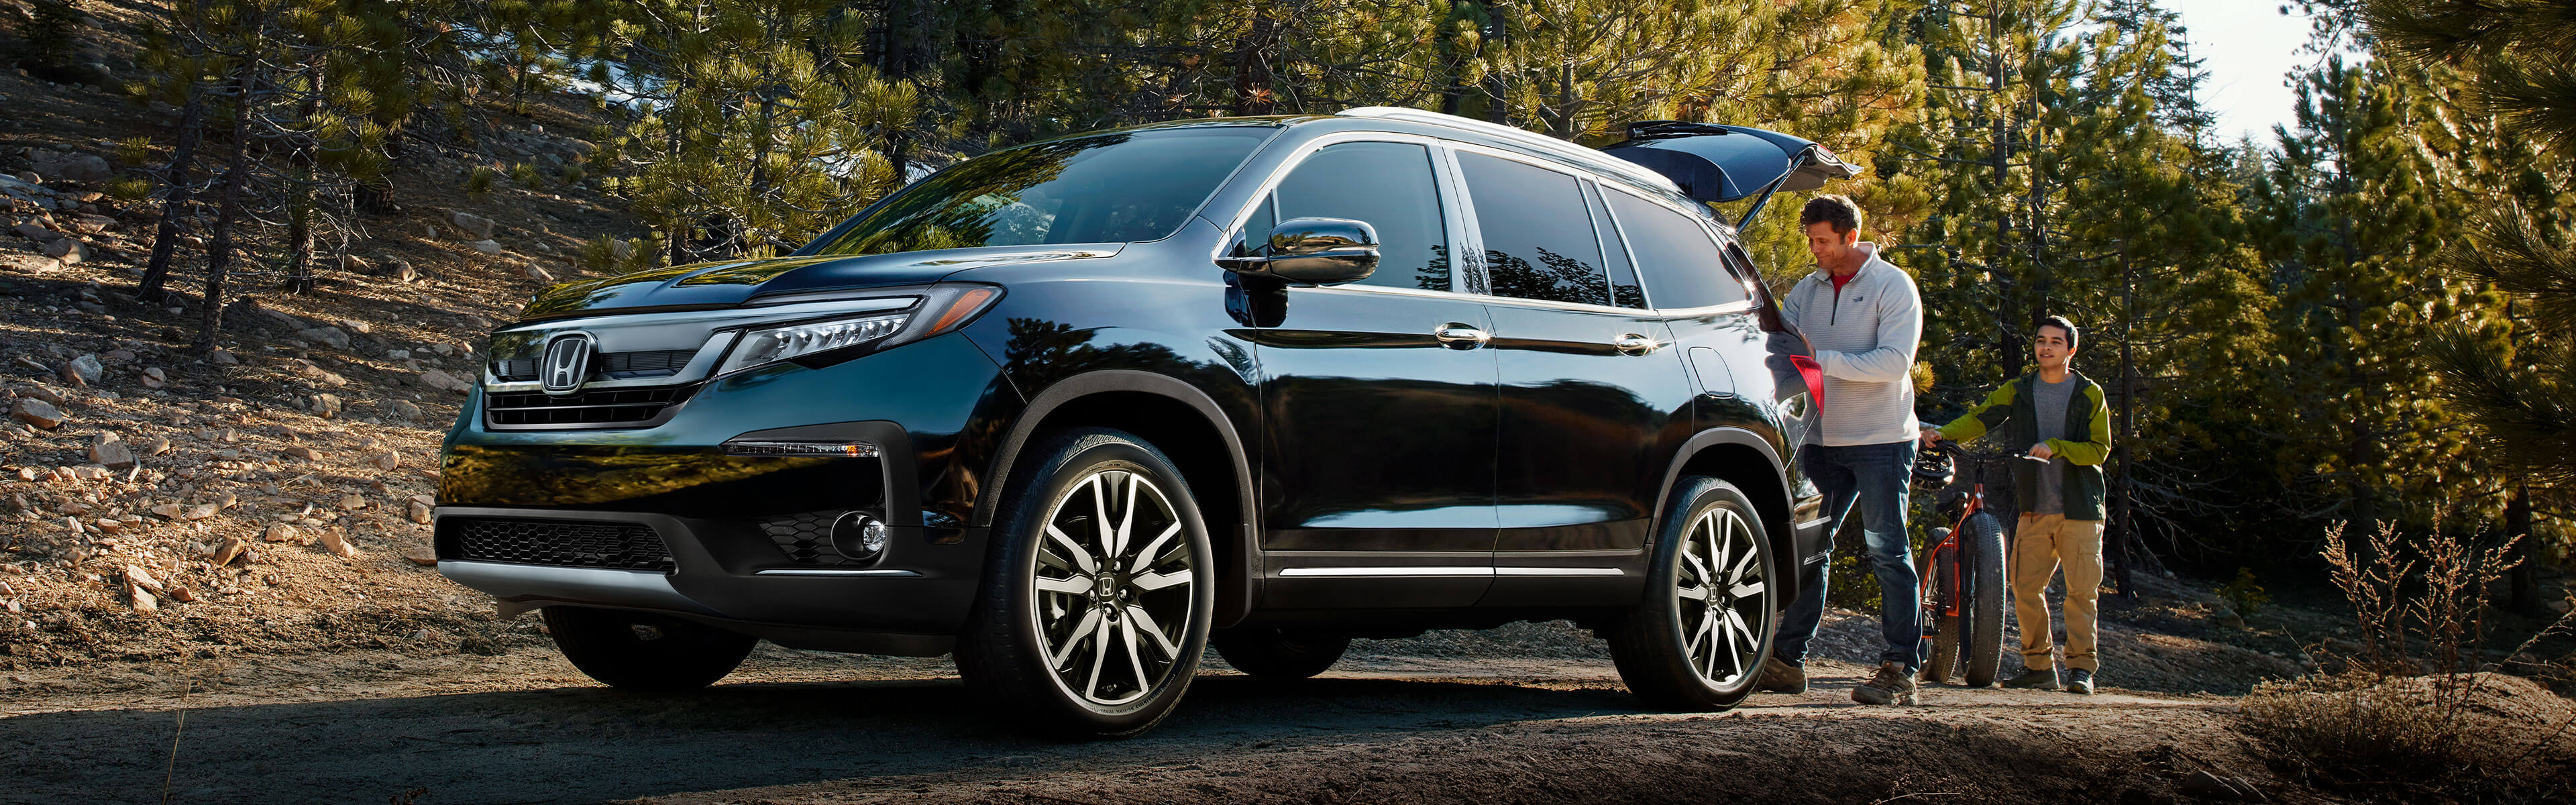 2020 Honda Pilot at Richmond Hill Honda in Toronto and the GTA